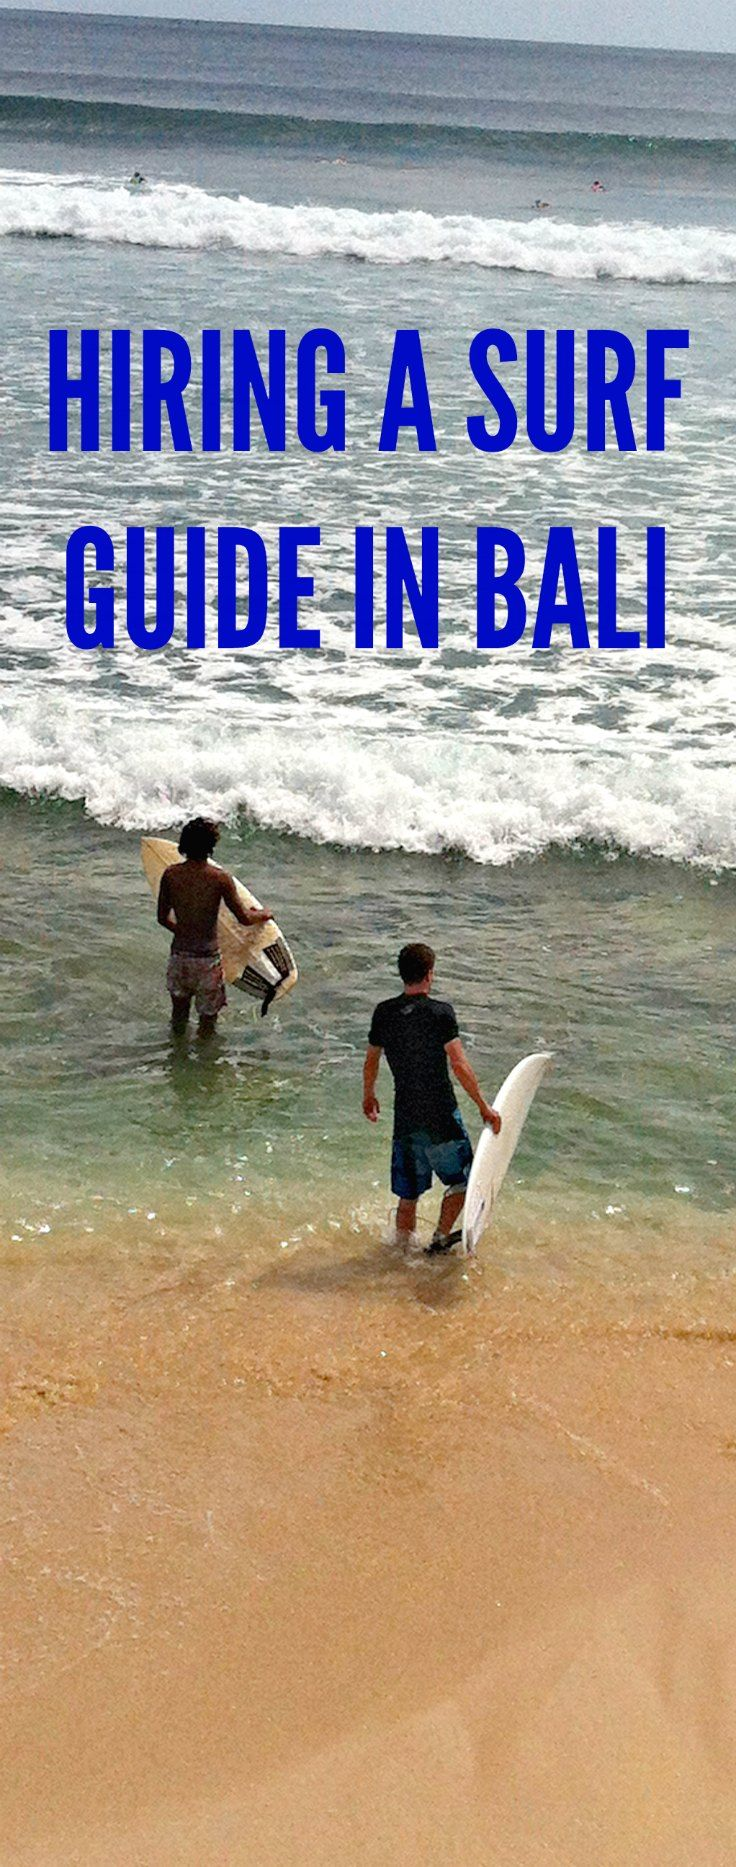 Even with major experience under your belt as a surfer, why it's a good idea to hire a local guide in Bali